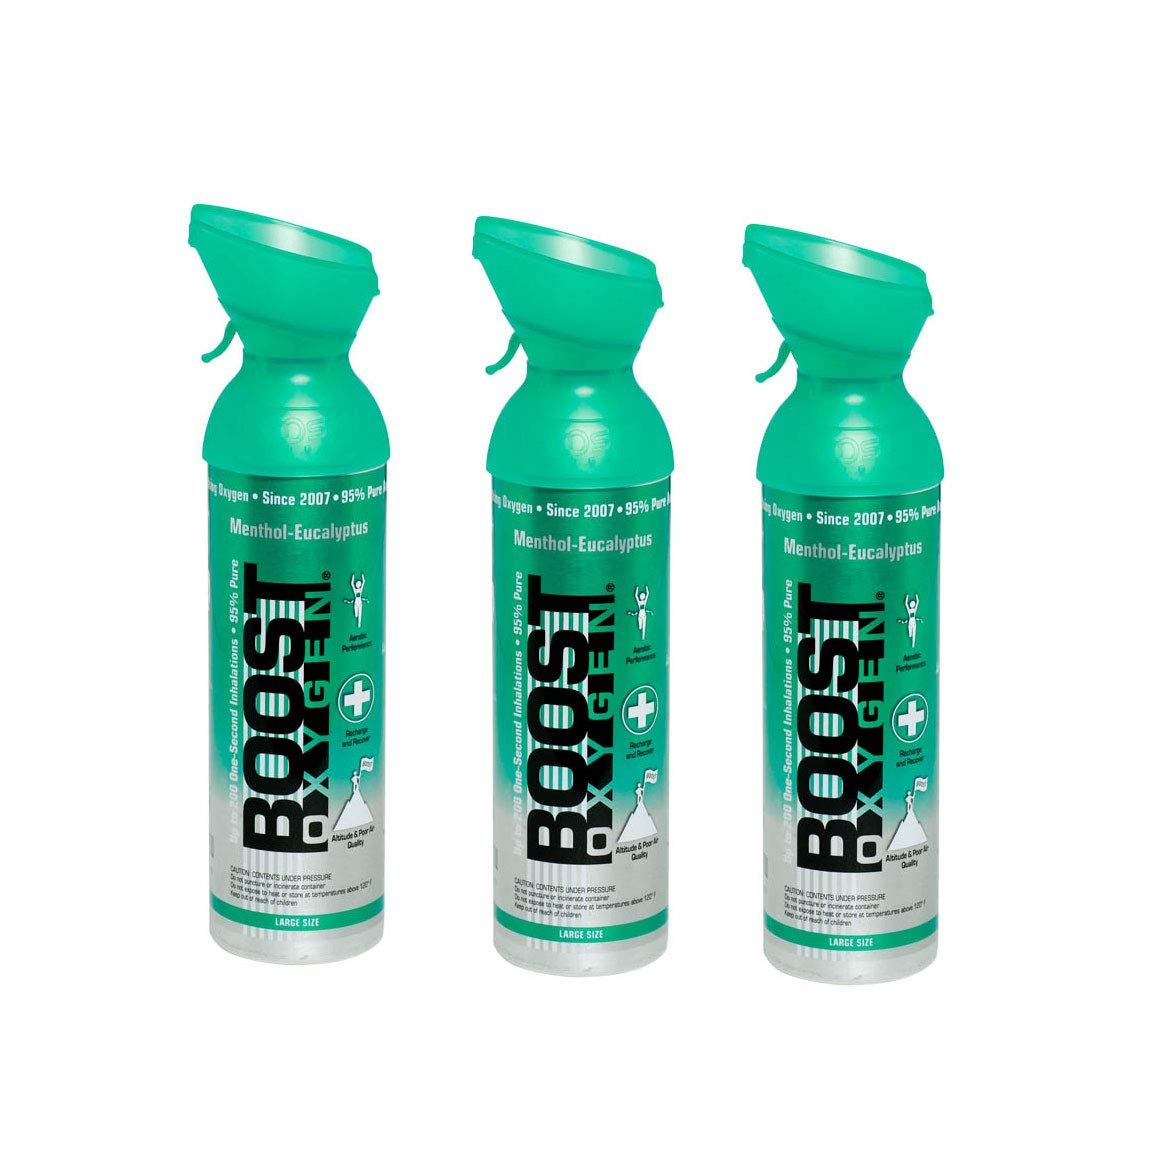 Boost Oxygen Natural 10 Liter Pure Oxygen Canister, Menthol Eucalyptus (3 Pack)